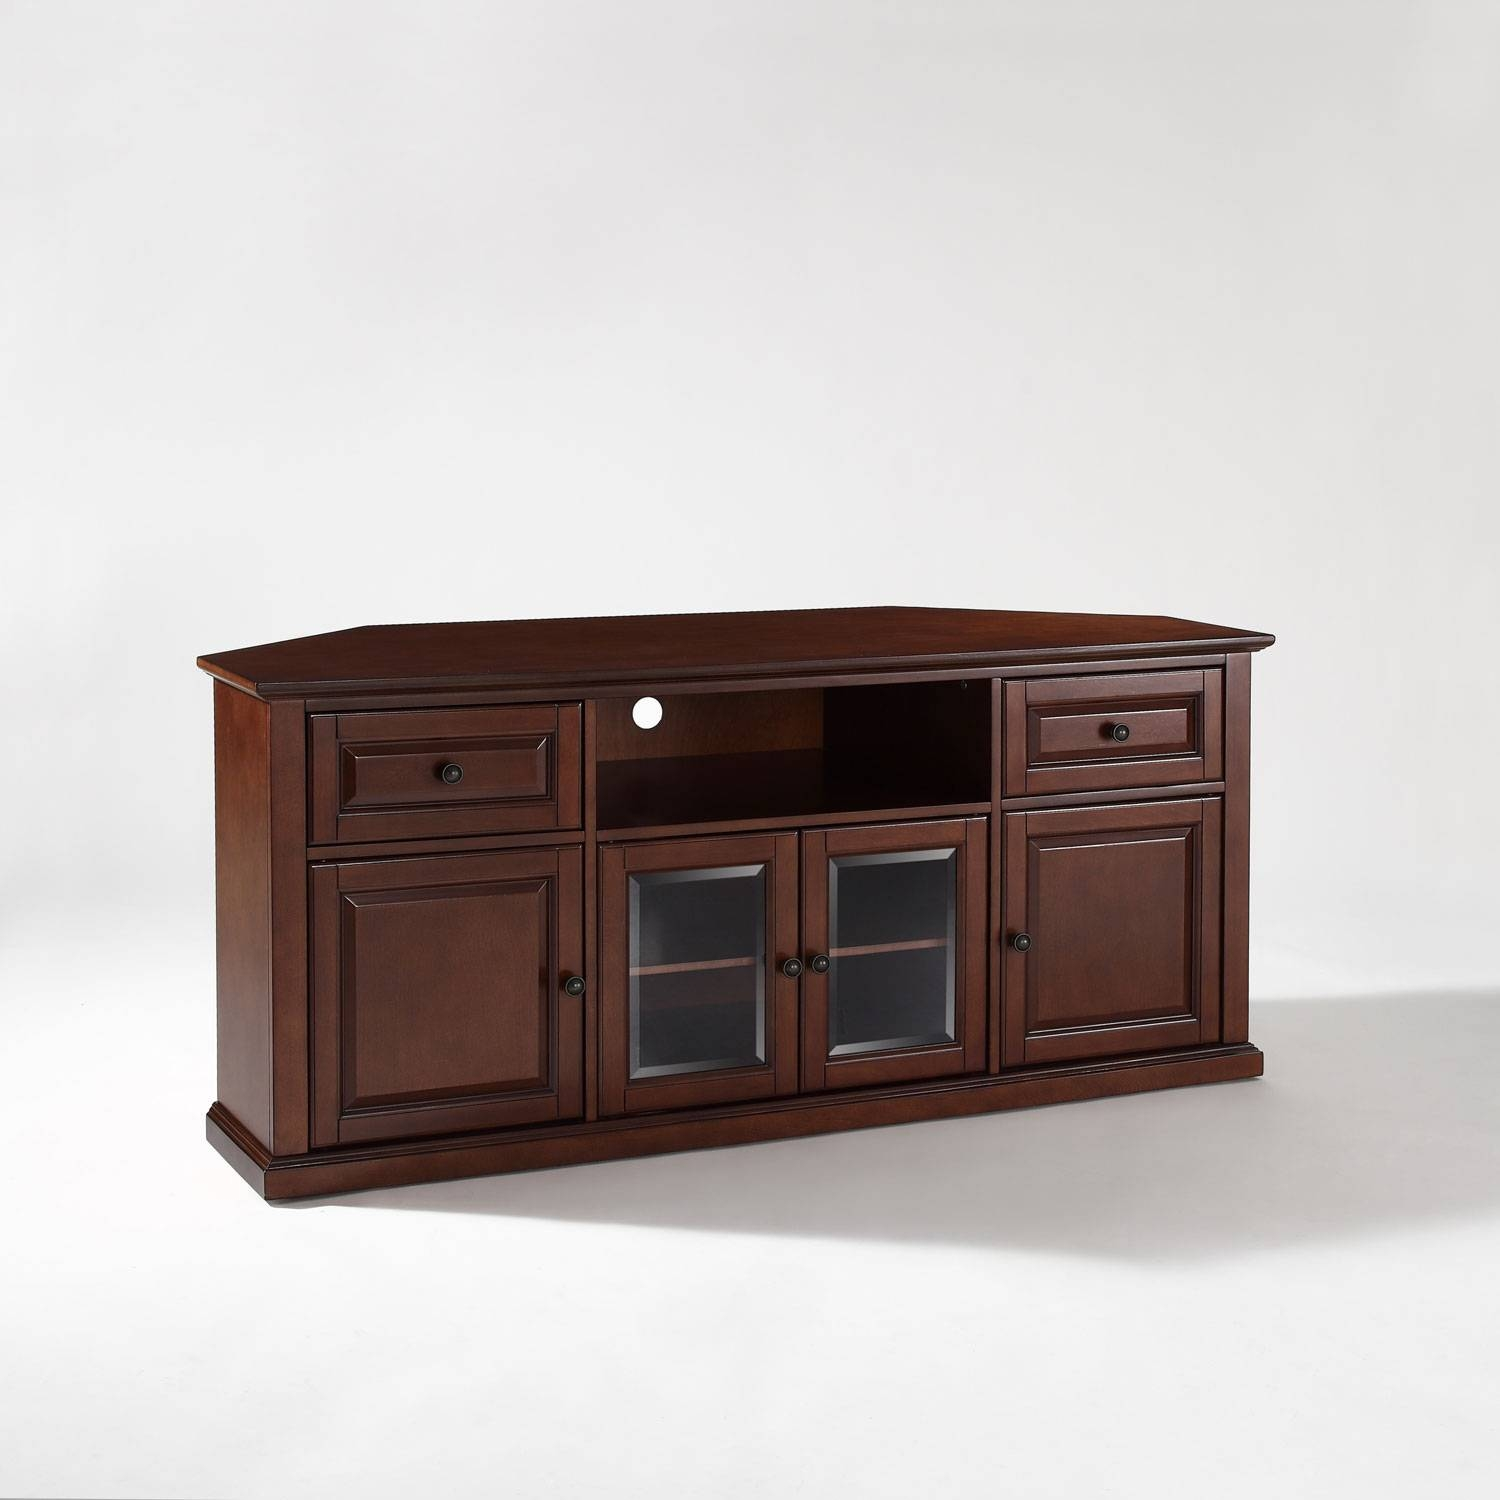 Tv Stands & Cabinets On Sale | Bellacor pertaining to Tv Stands With Rounded Corners (Image 15 of 15)